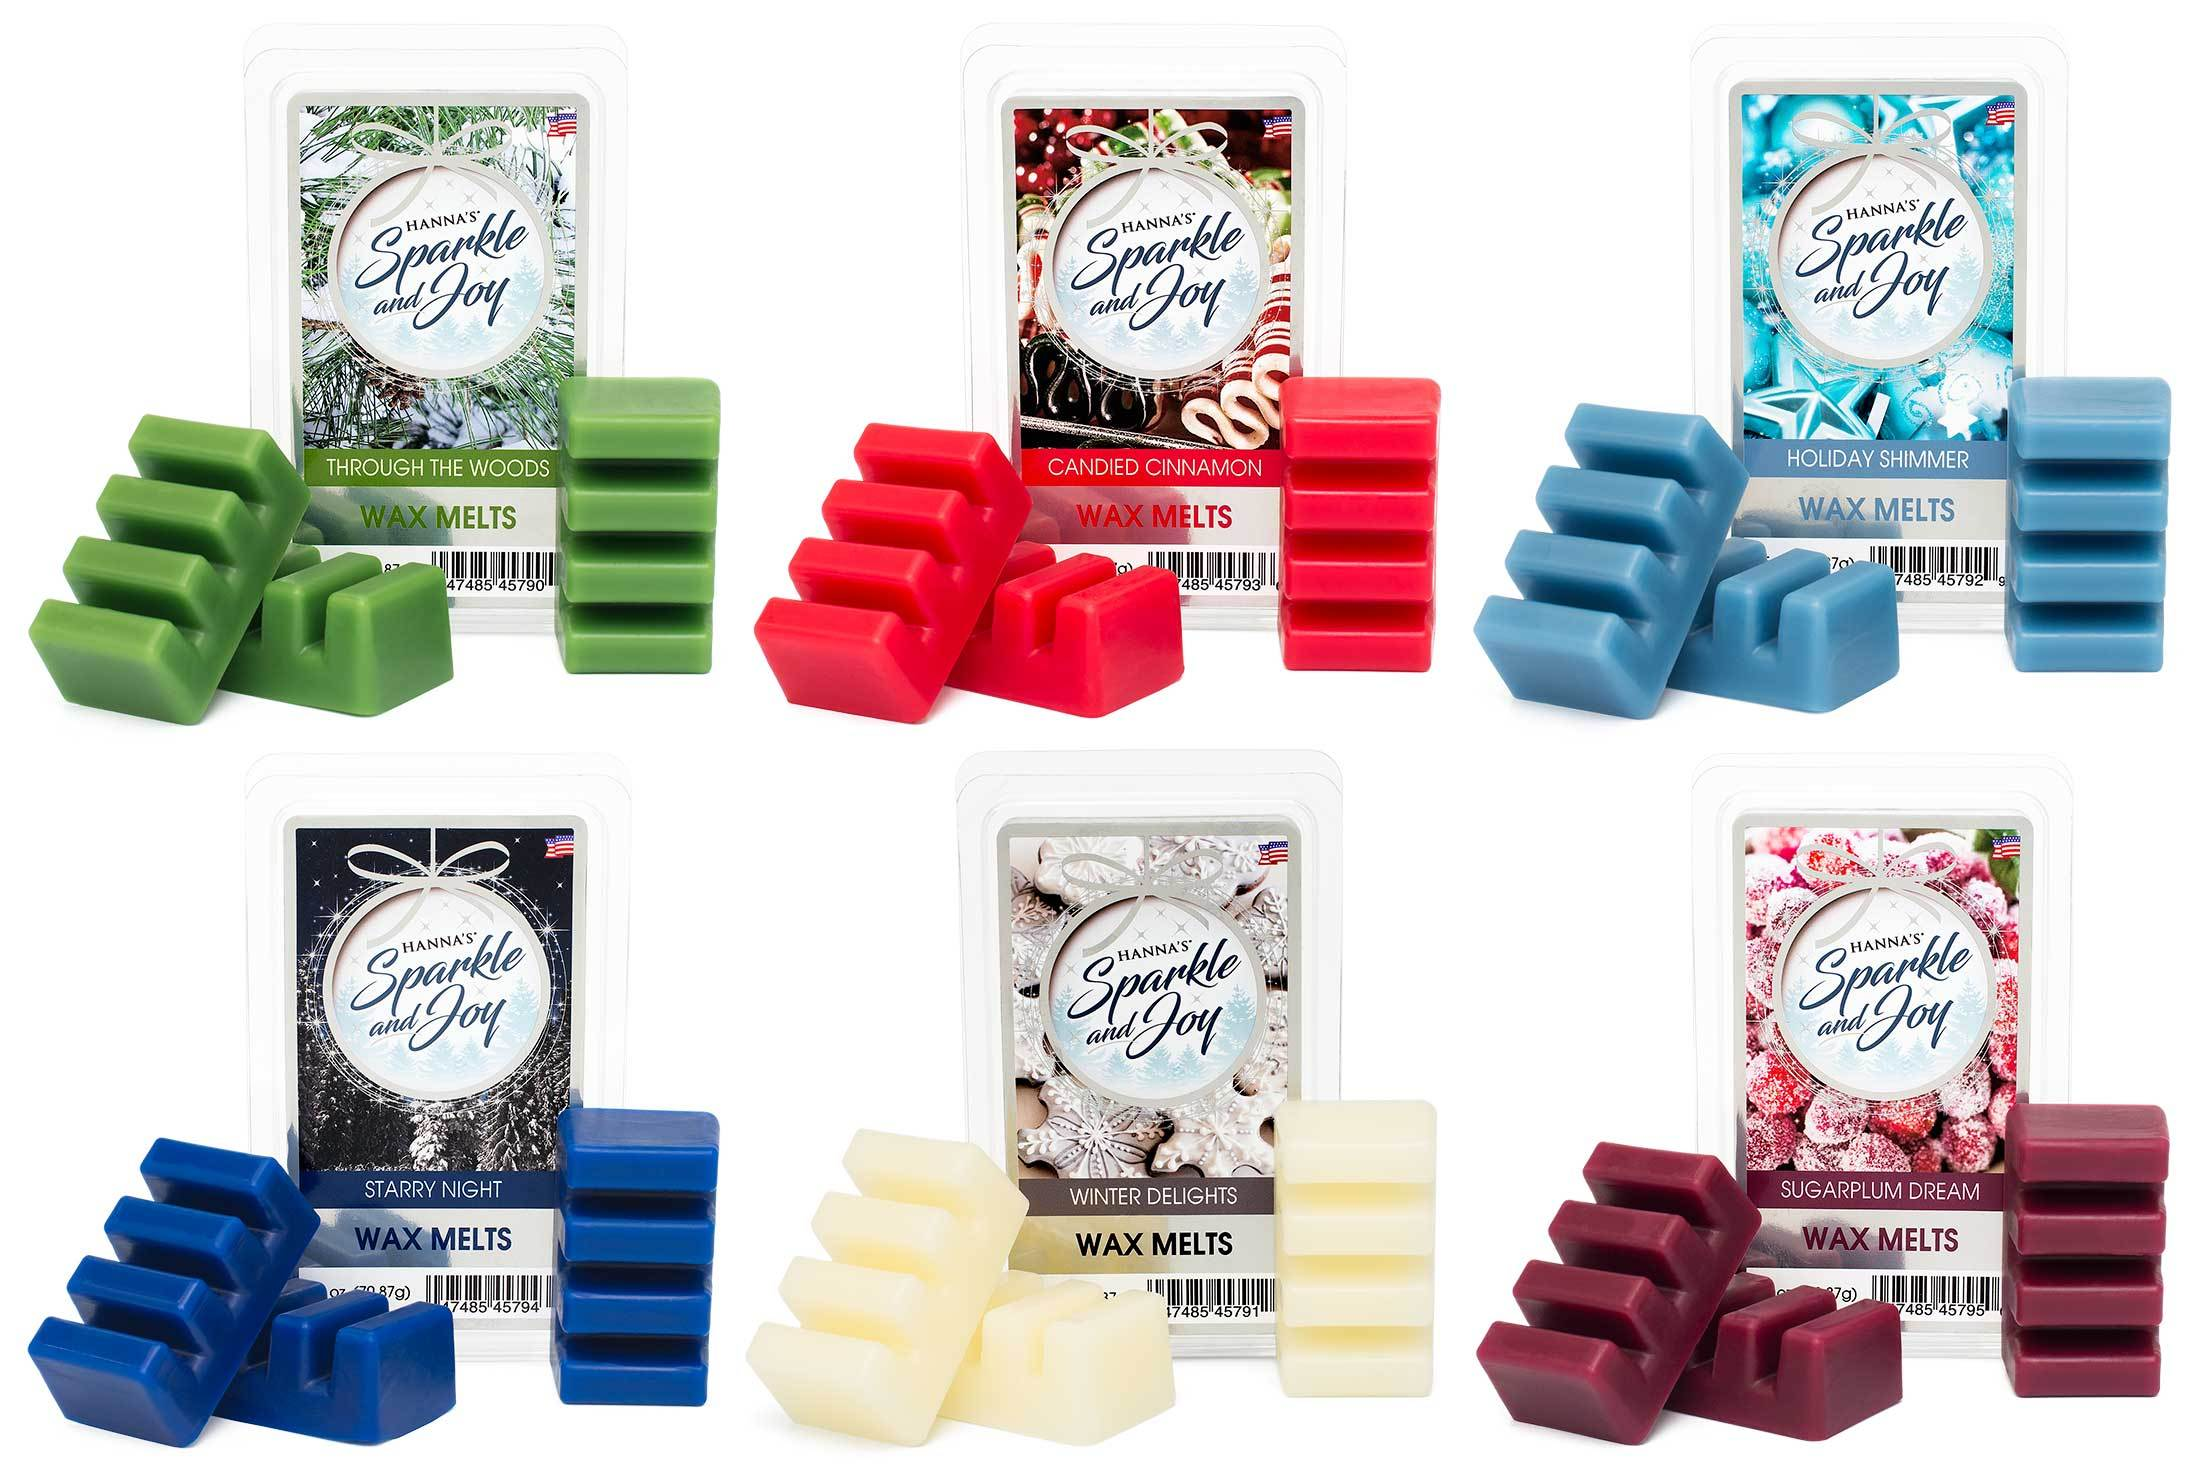 Starry Night Scented Wax Melts Melts Candlemart.com $ 2.49